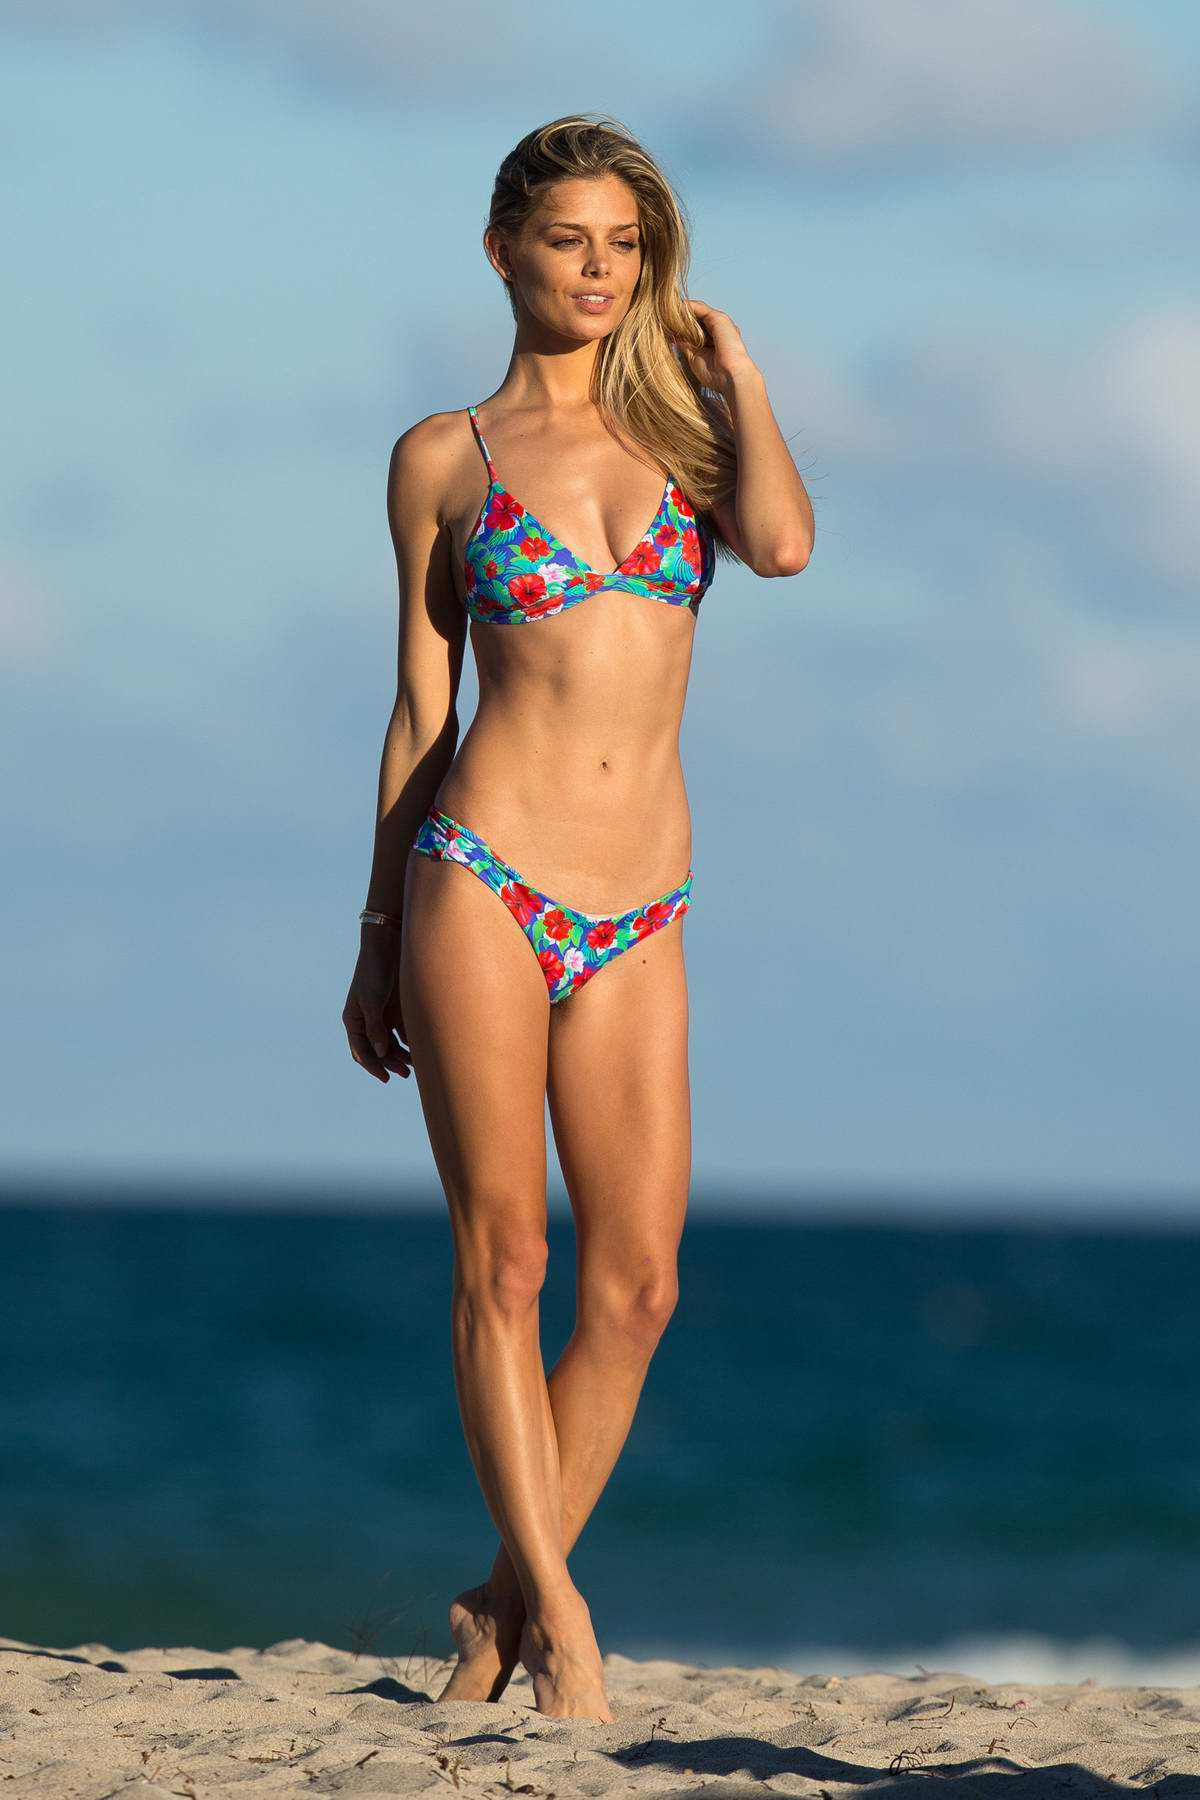 Danielle Knudson in a floral print bikini enjoying a day on the beach in Miami, Florida